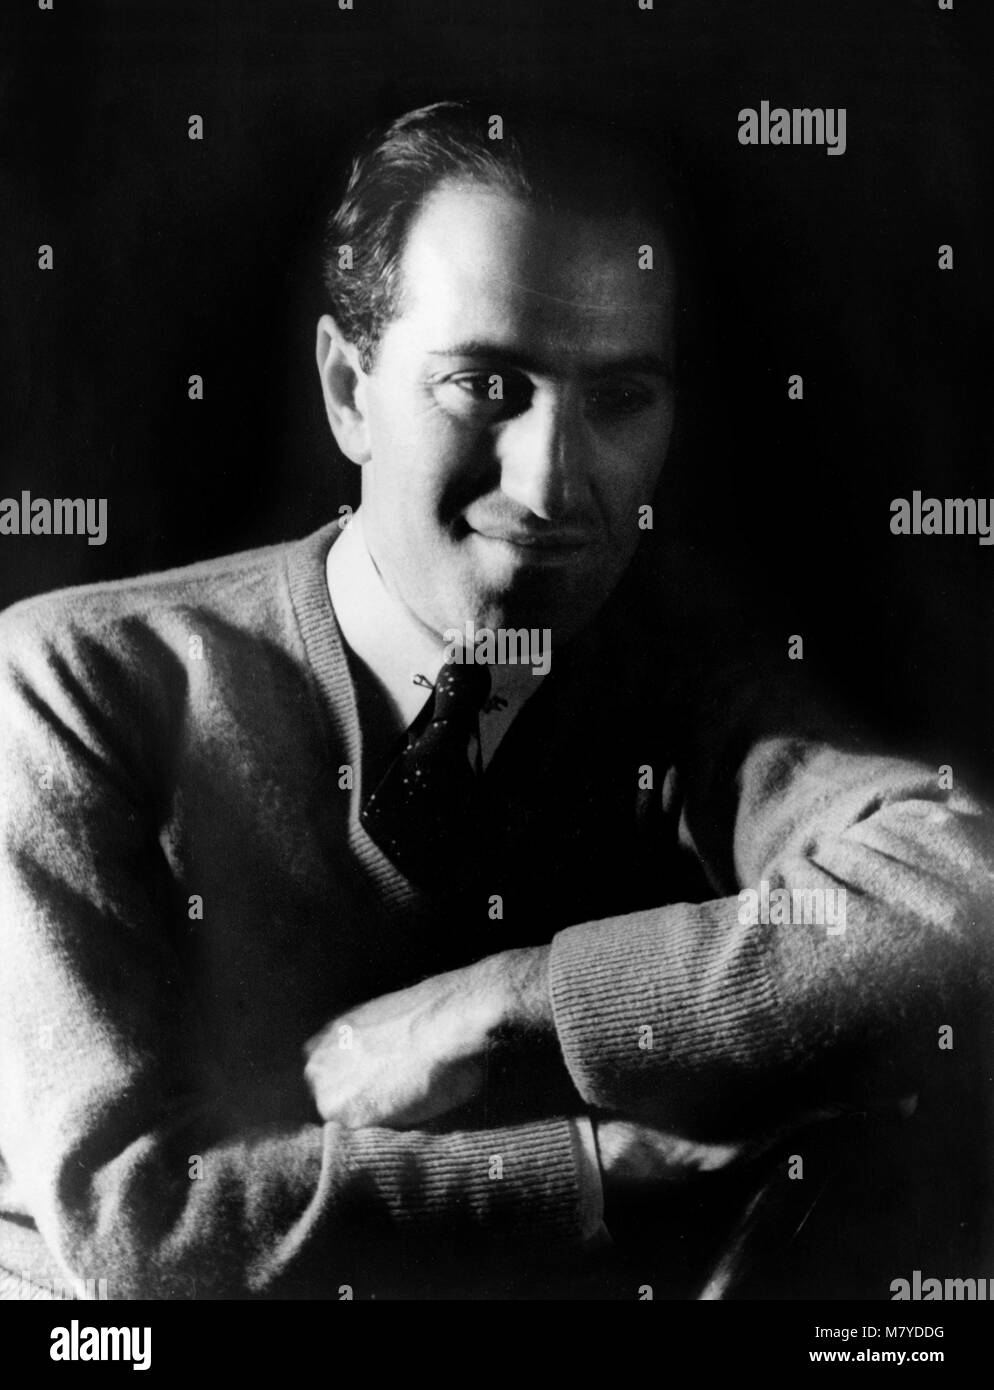 George Gershwin (1898-1937), portrait of the American composer by Carl Van Vechten, 1937 - Stock Image